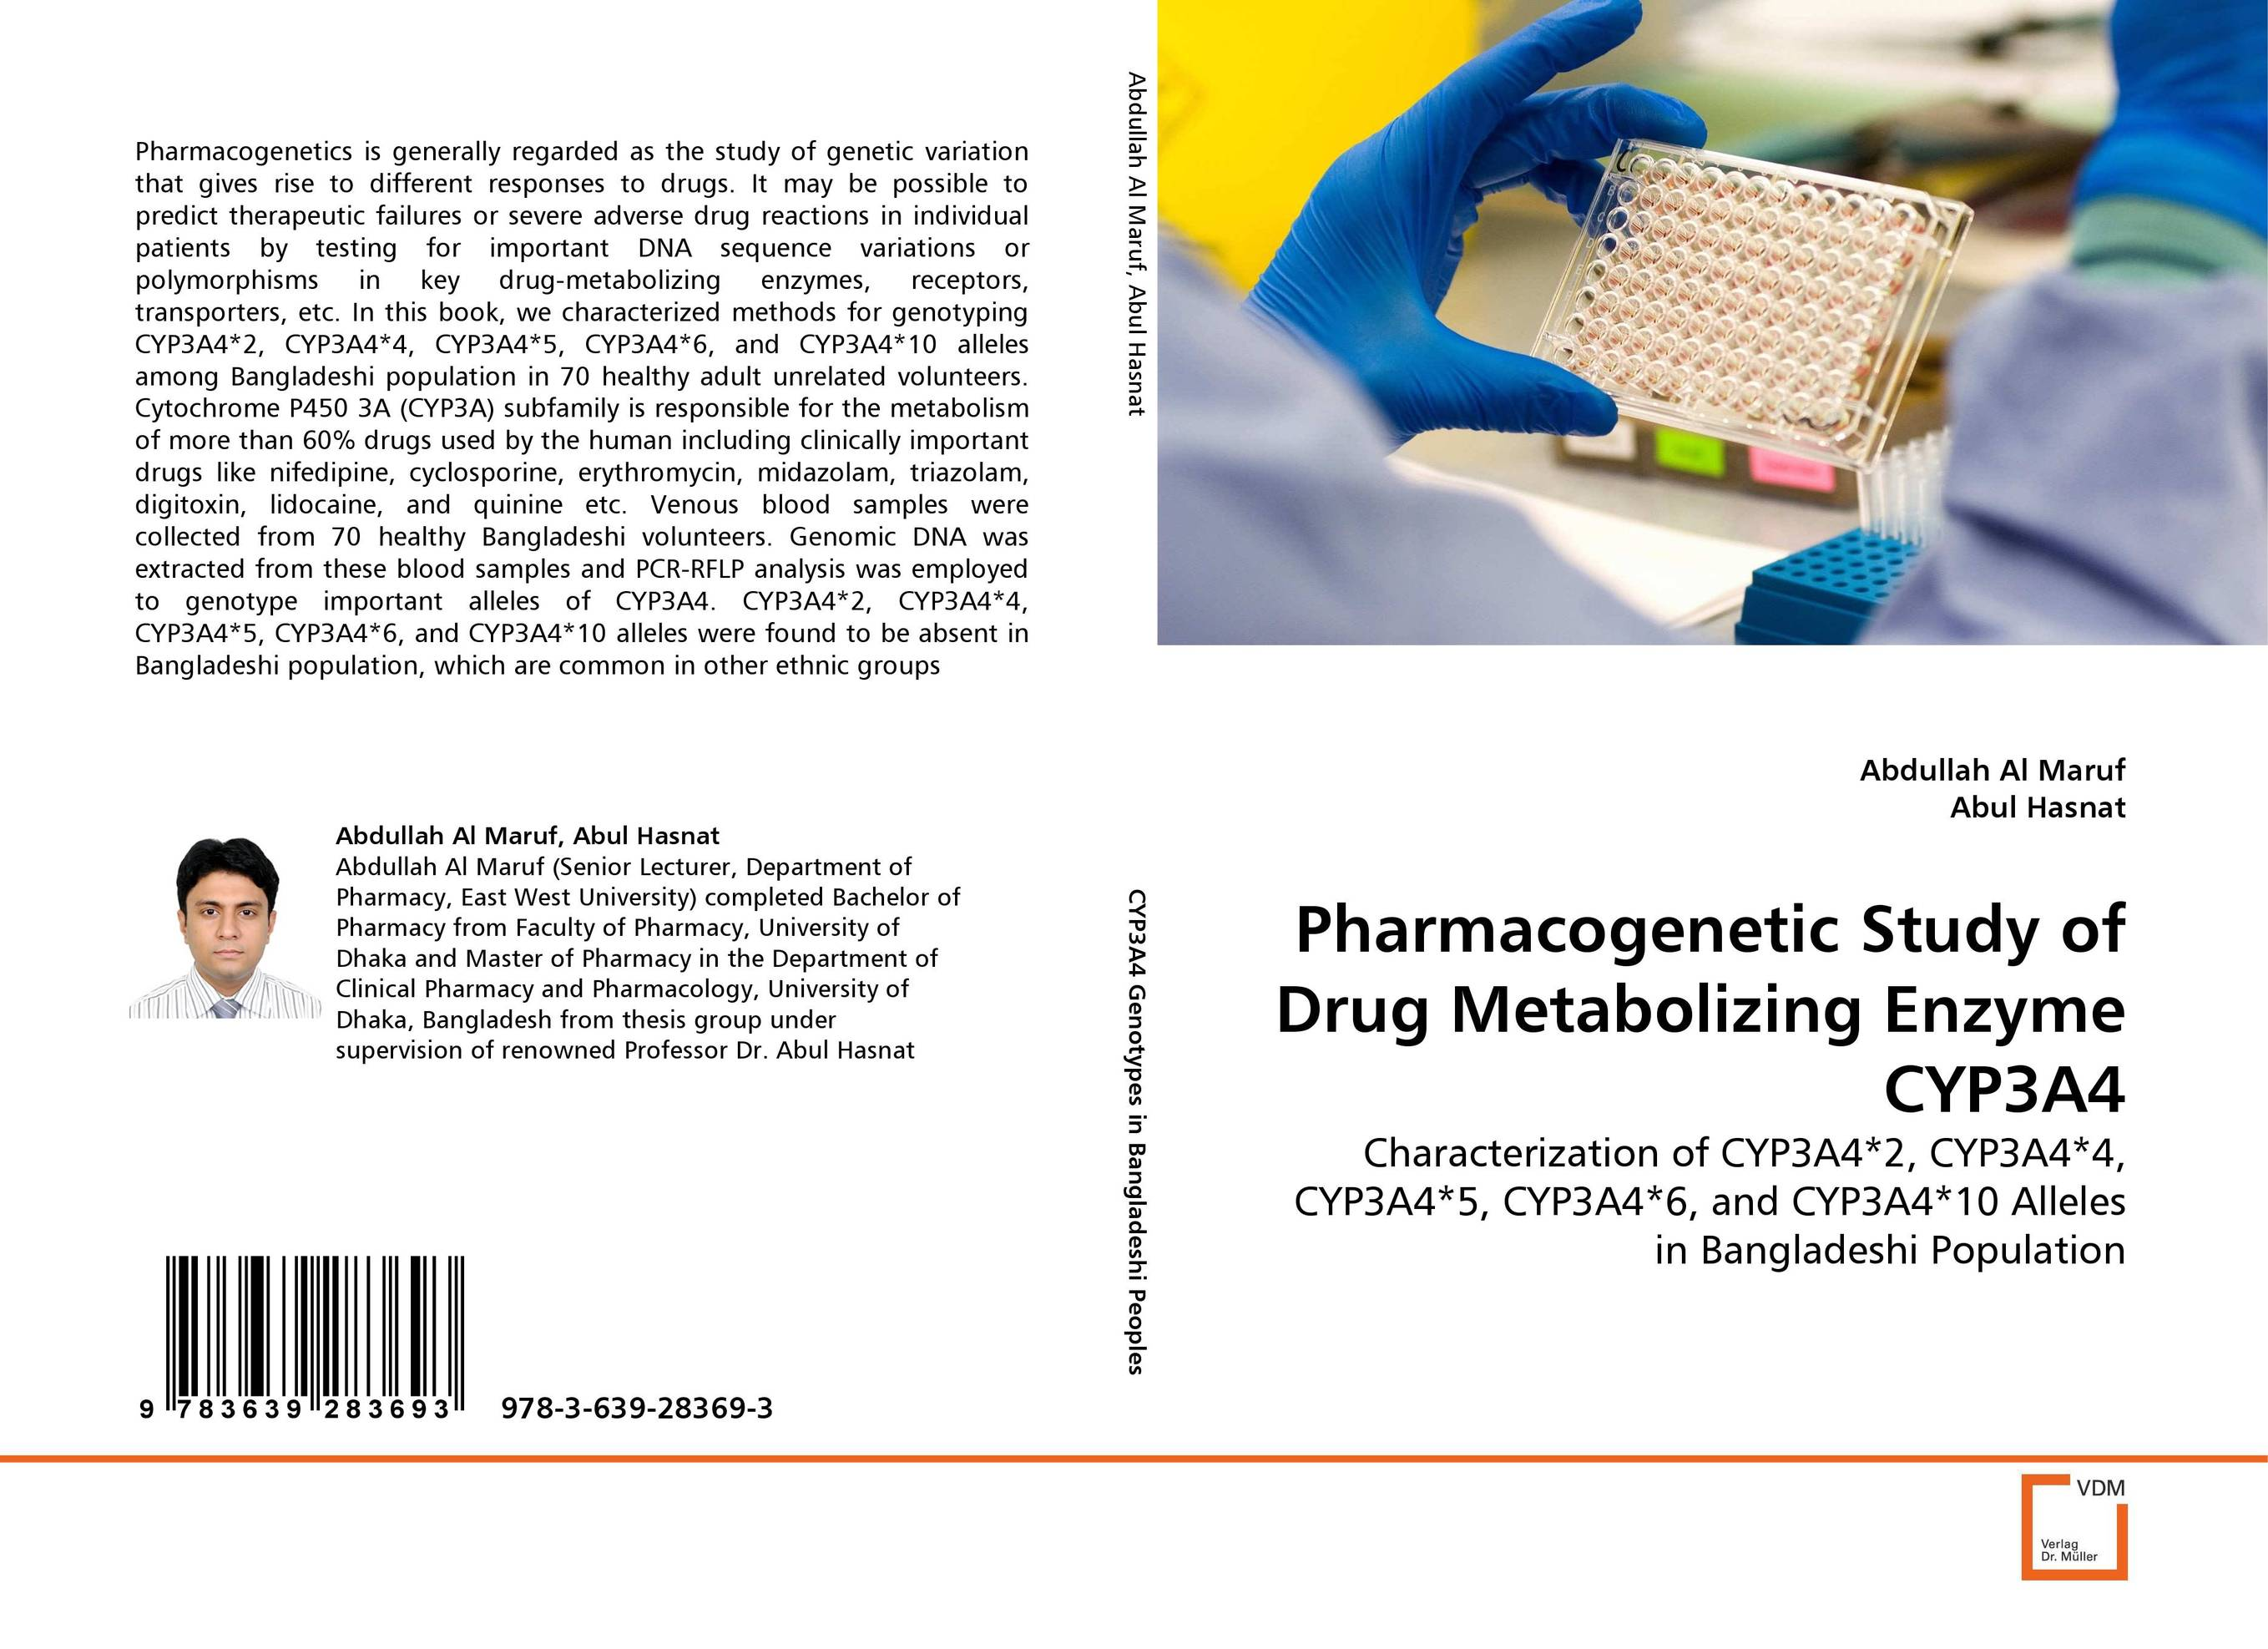 Pharmacogenetic Study of Drug Metabolizing Enzyme CYP3A4 using enzyme from novozyme